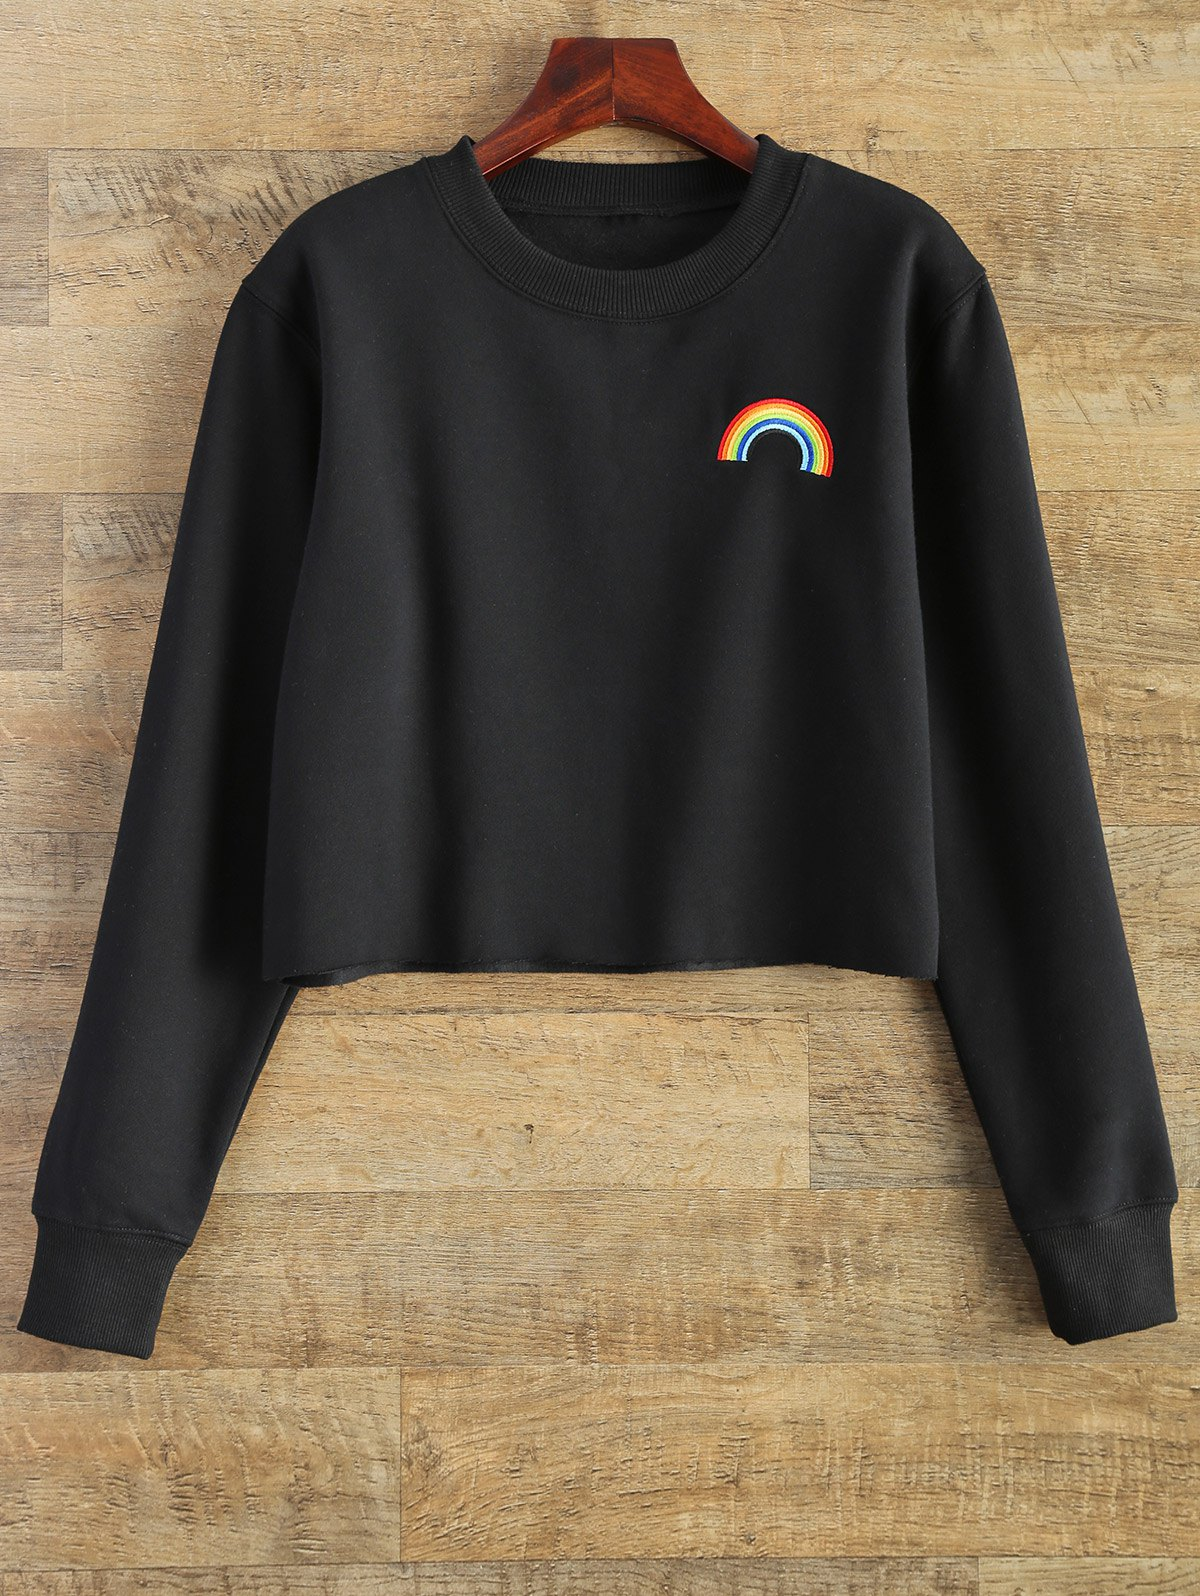 Black M Raw Edge Rainbow Cropped Sweatshirt Rosegal Com